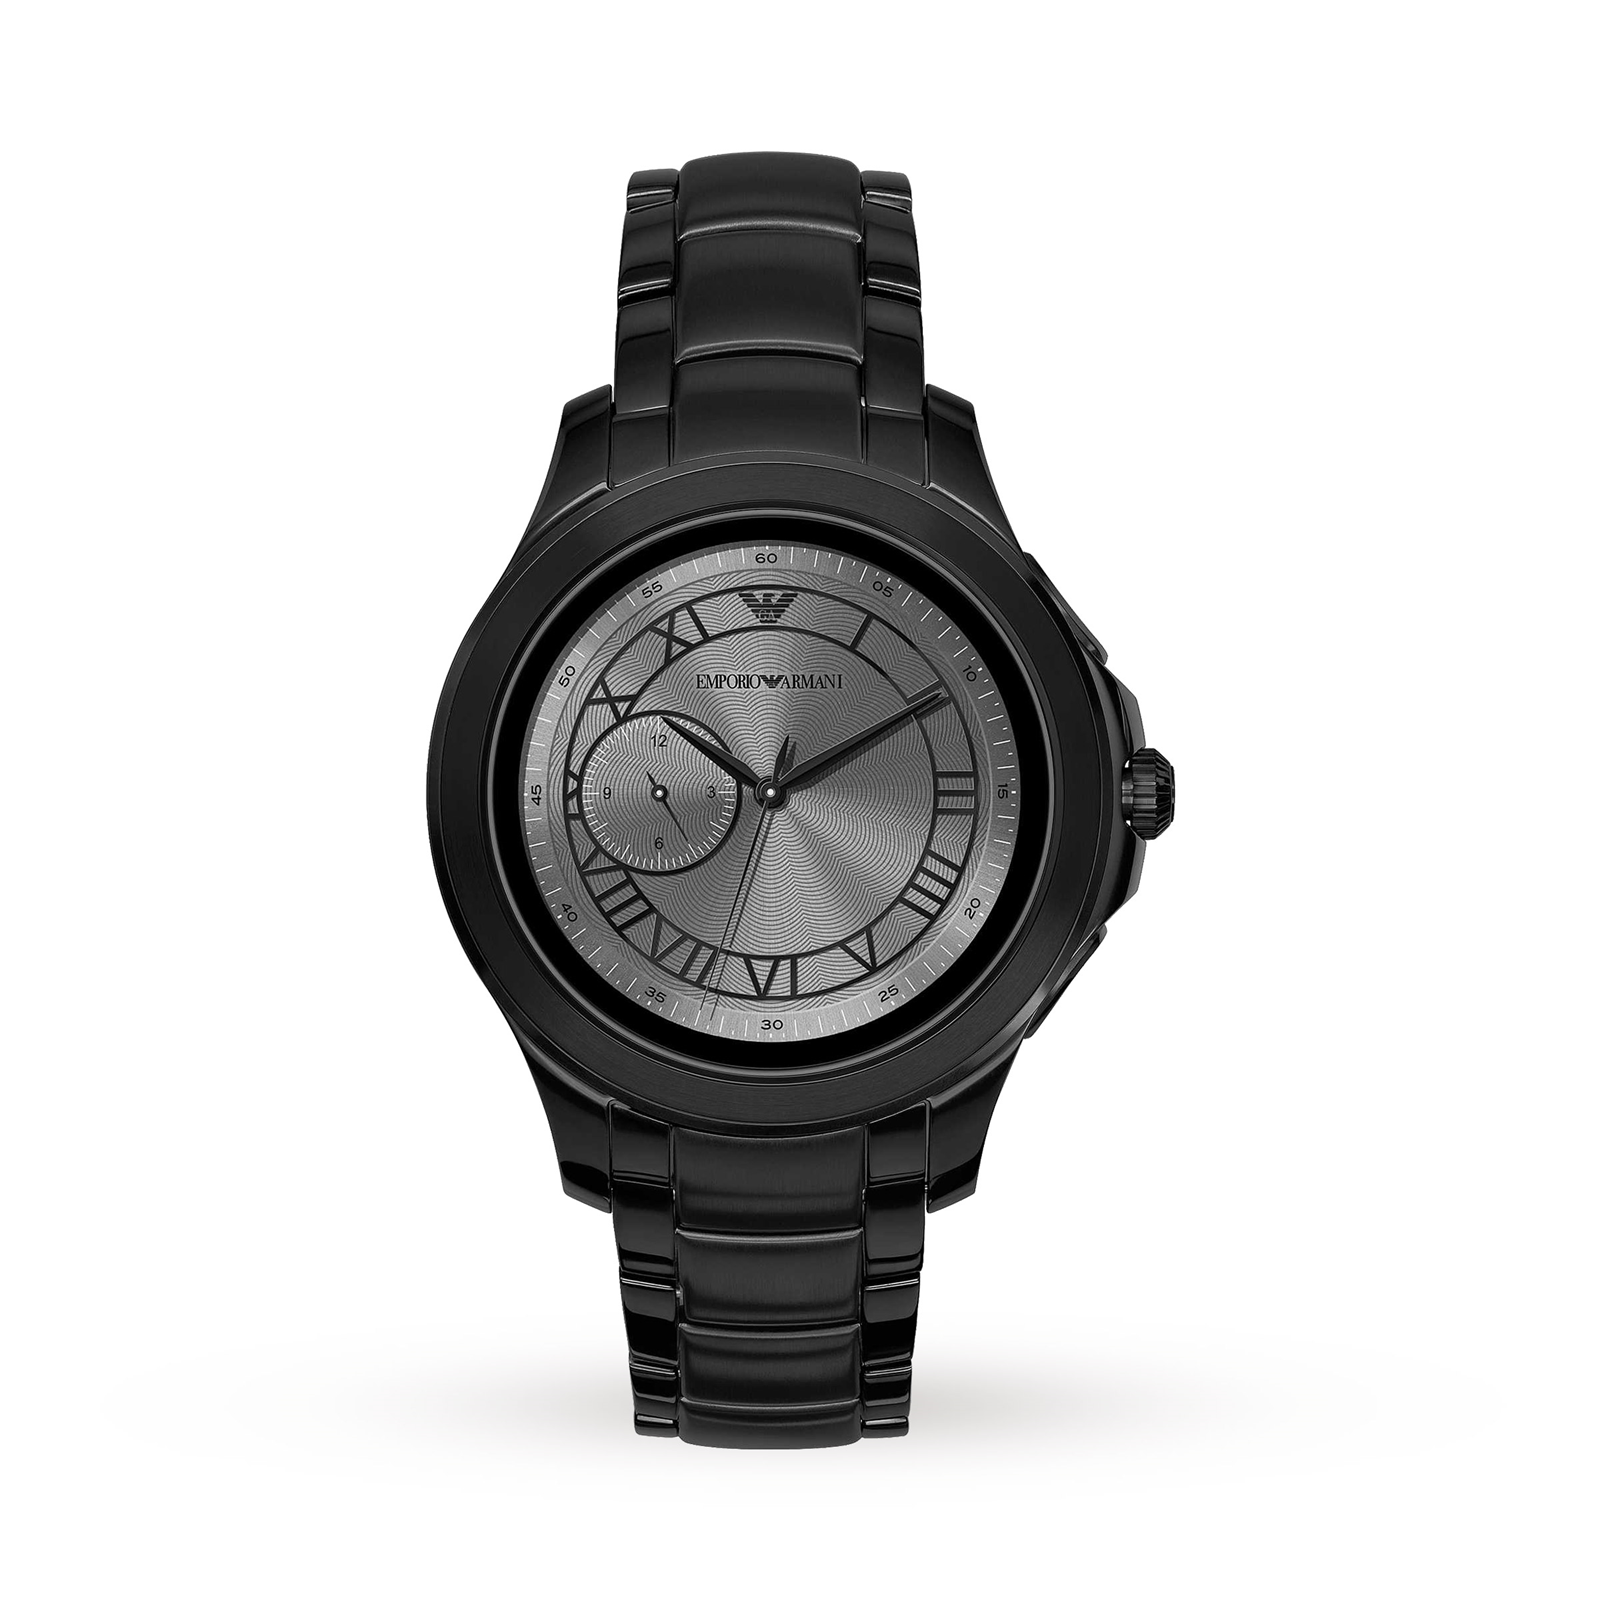 Armani Connected Mens Watch ART5011